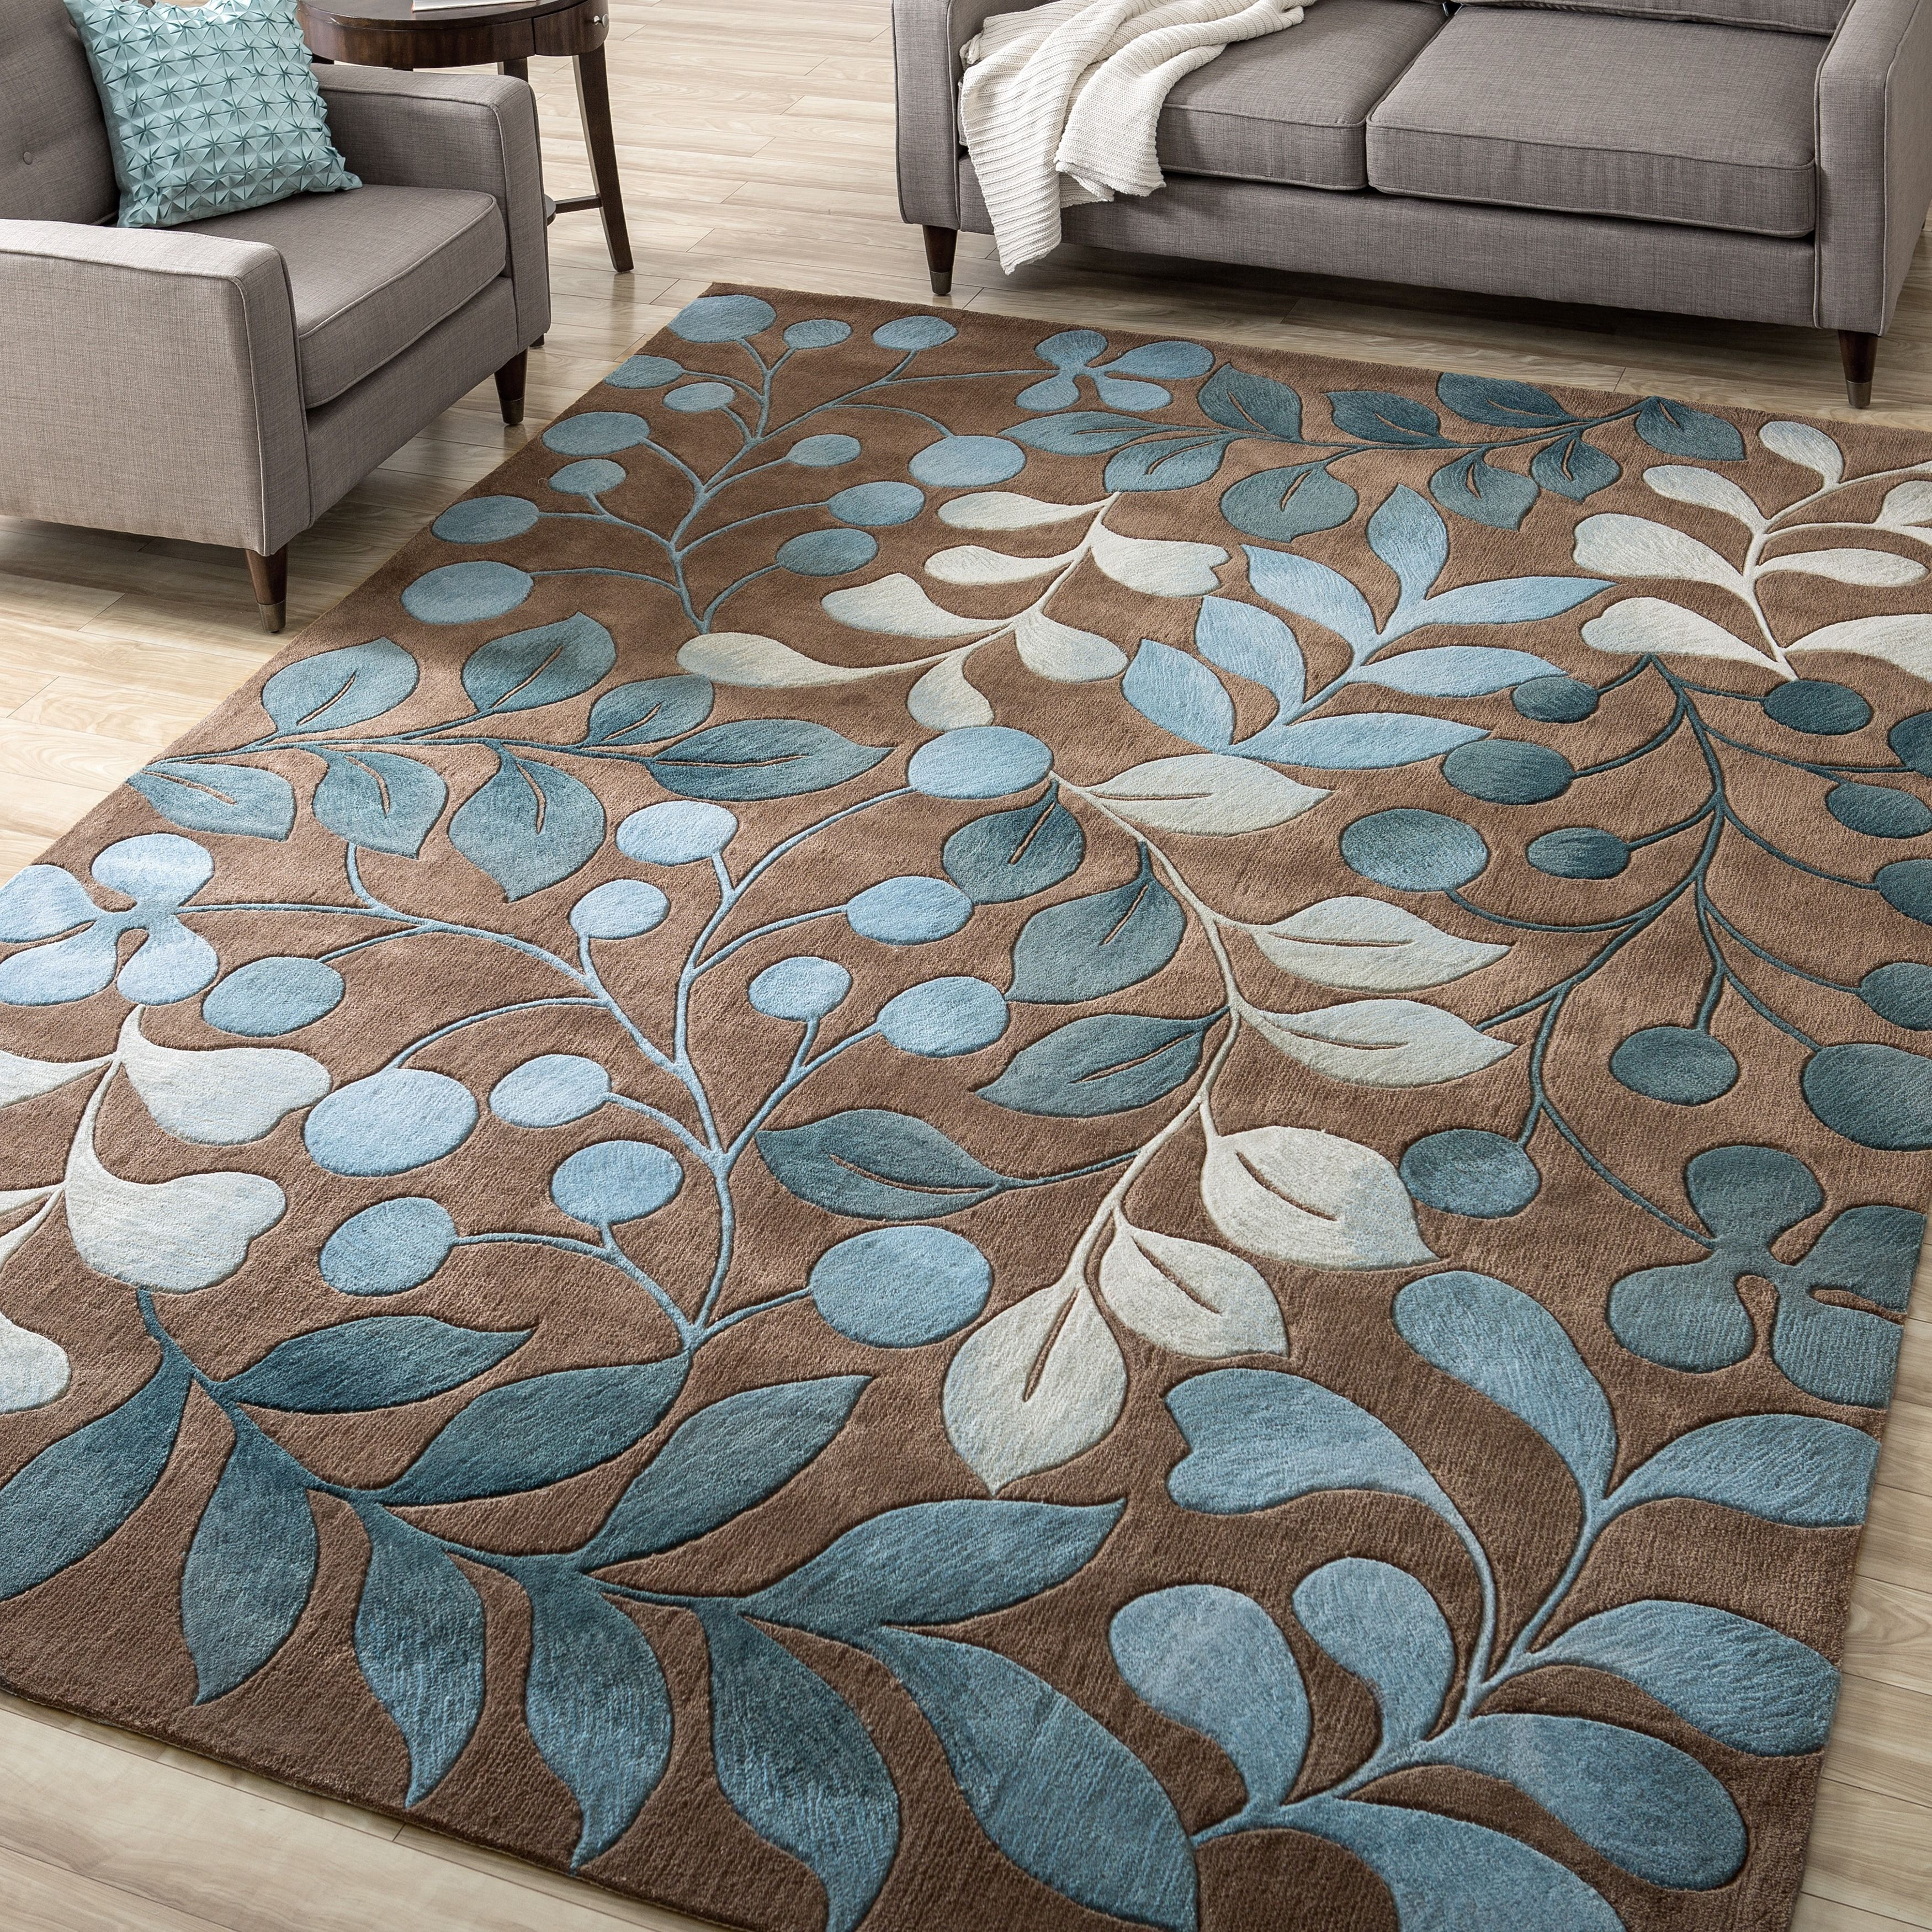 Add an elegant new style to a room with this 100 percent polyester